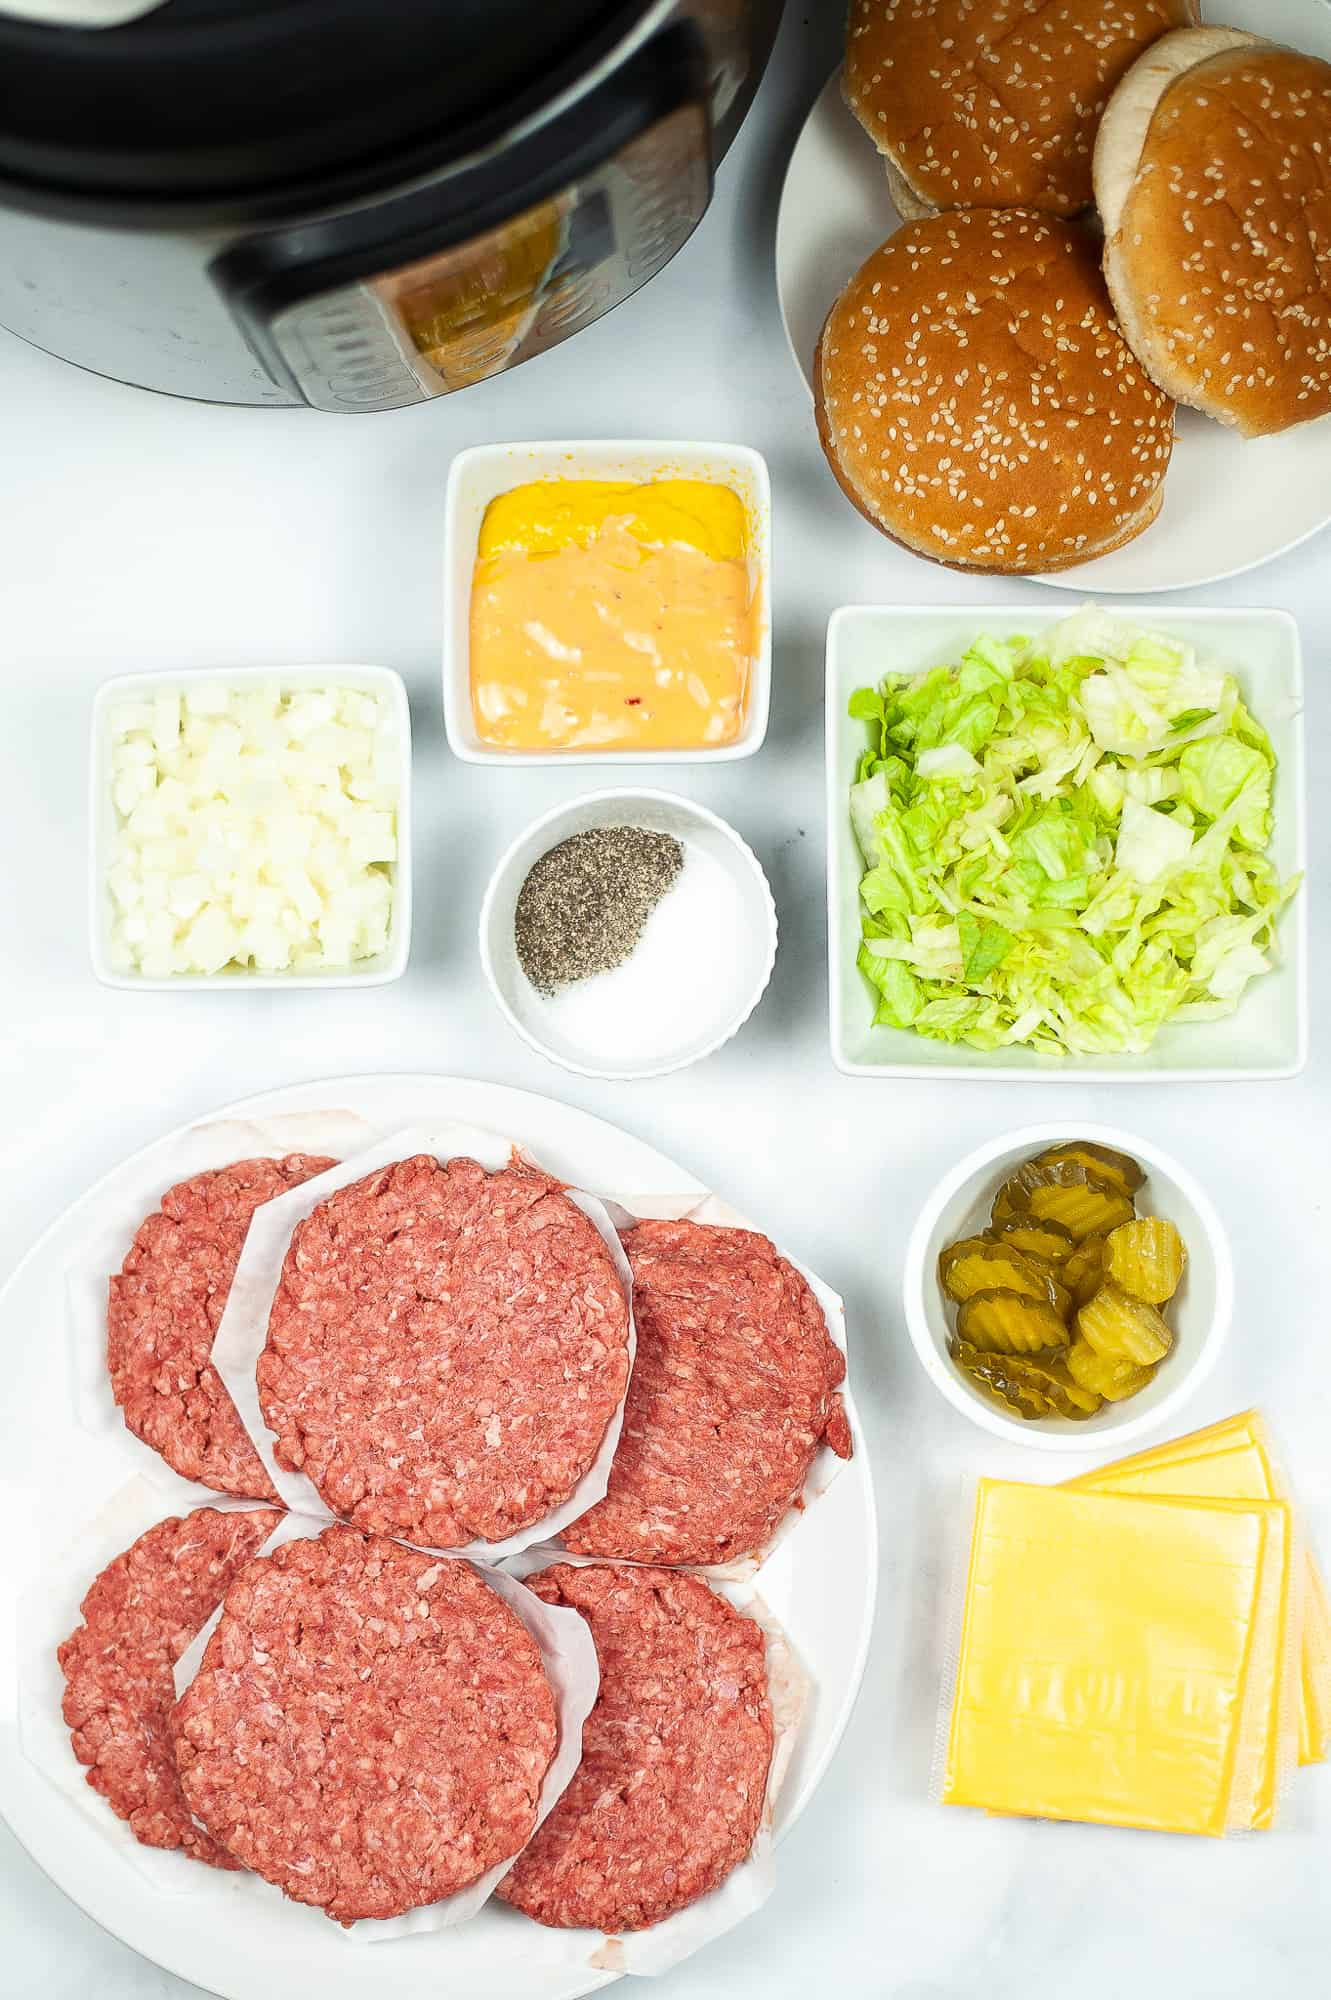 ingredients for homemade big macs on counter in ingredient bowls